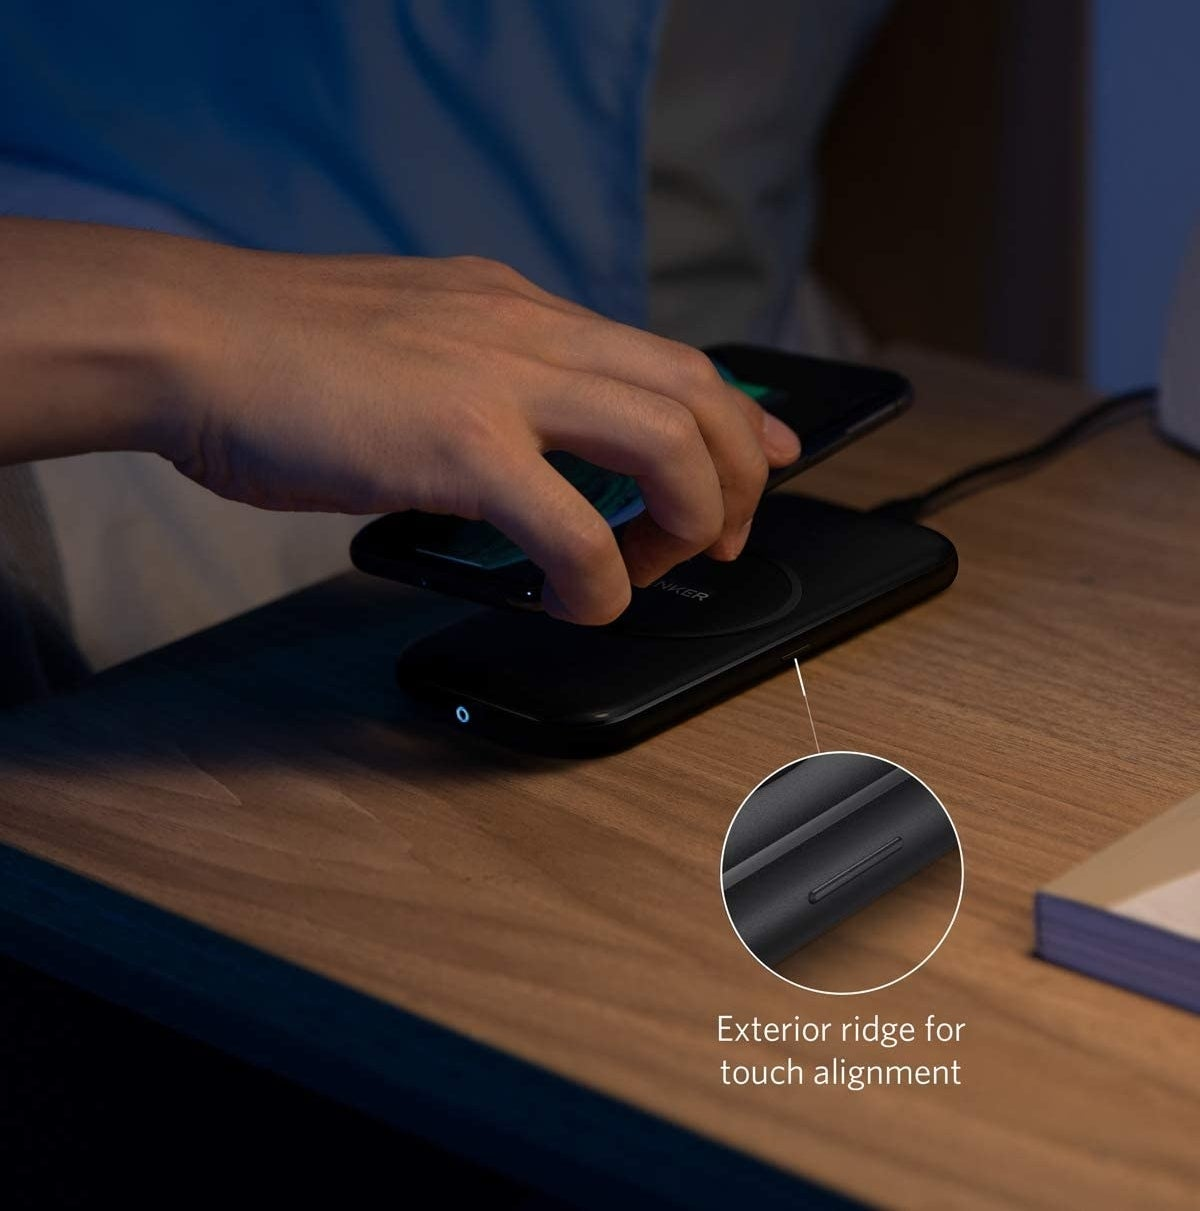 Model's hand putting a phone onto the black rectangle charging pad